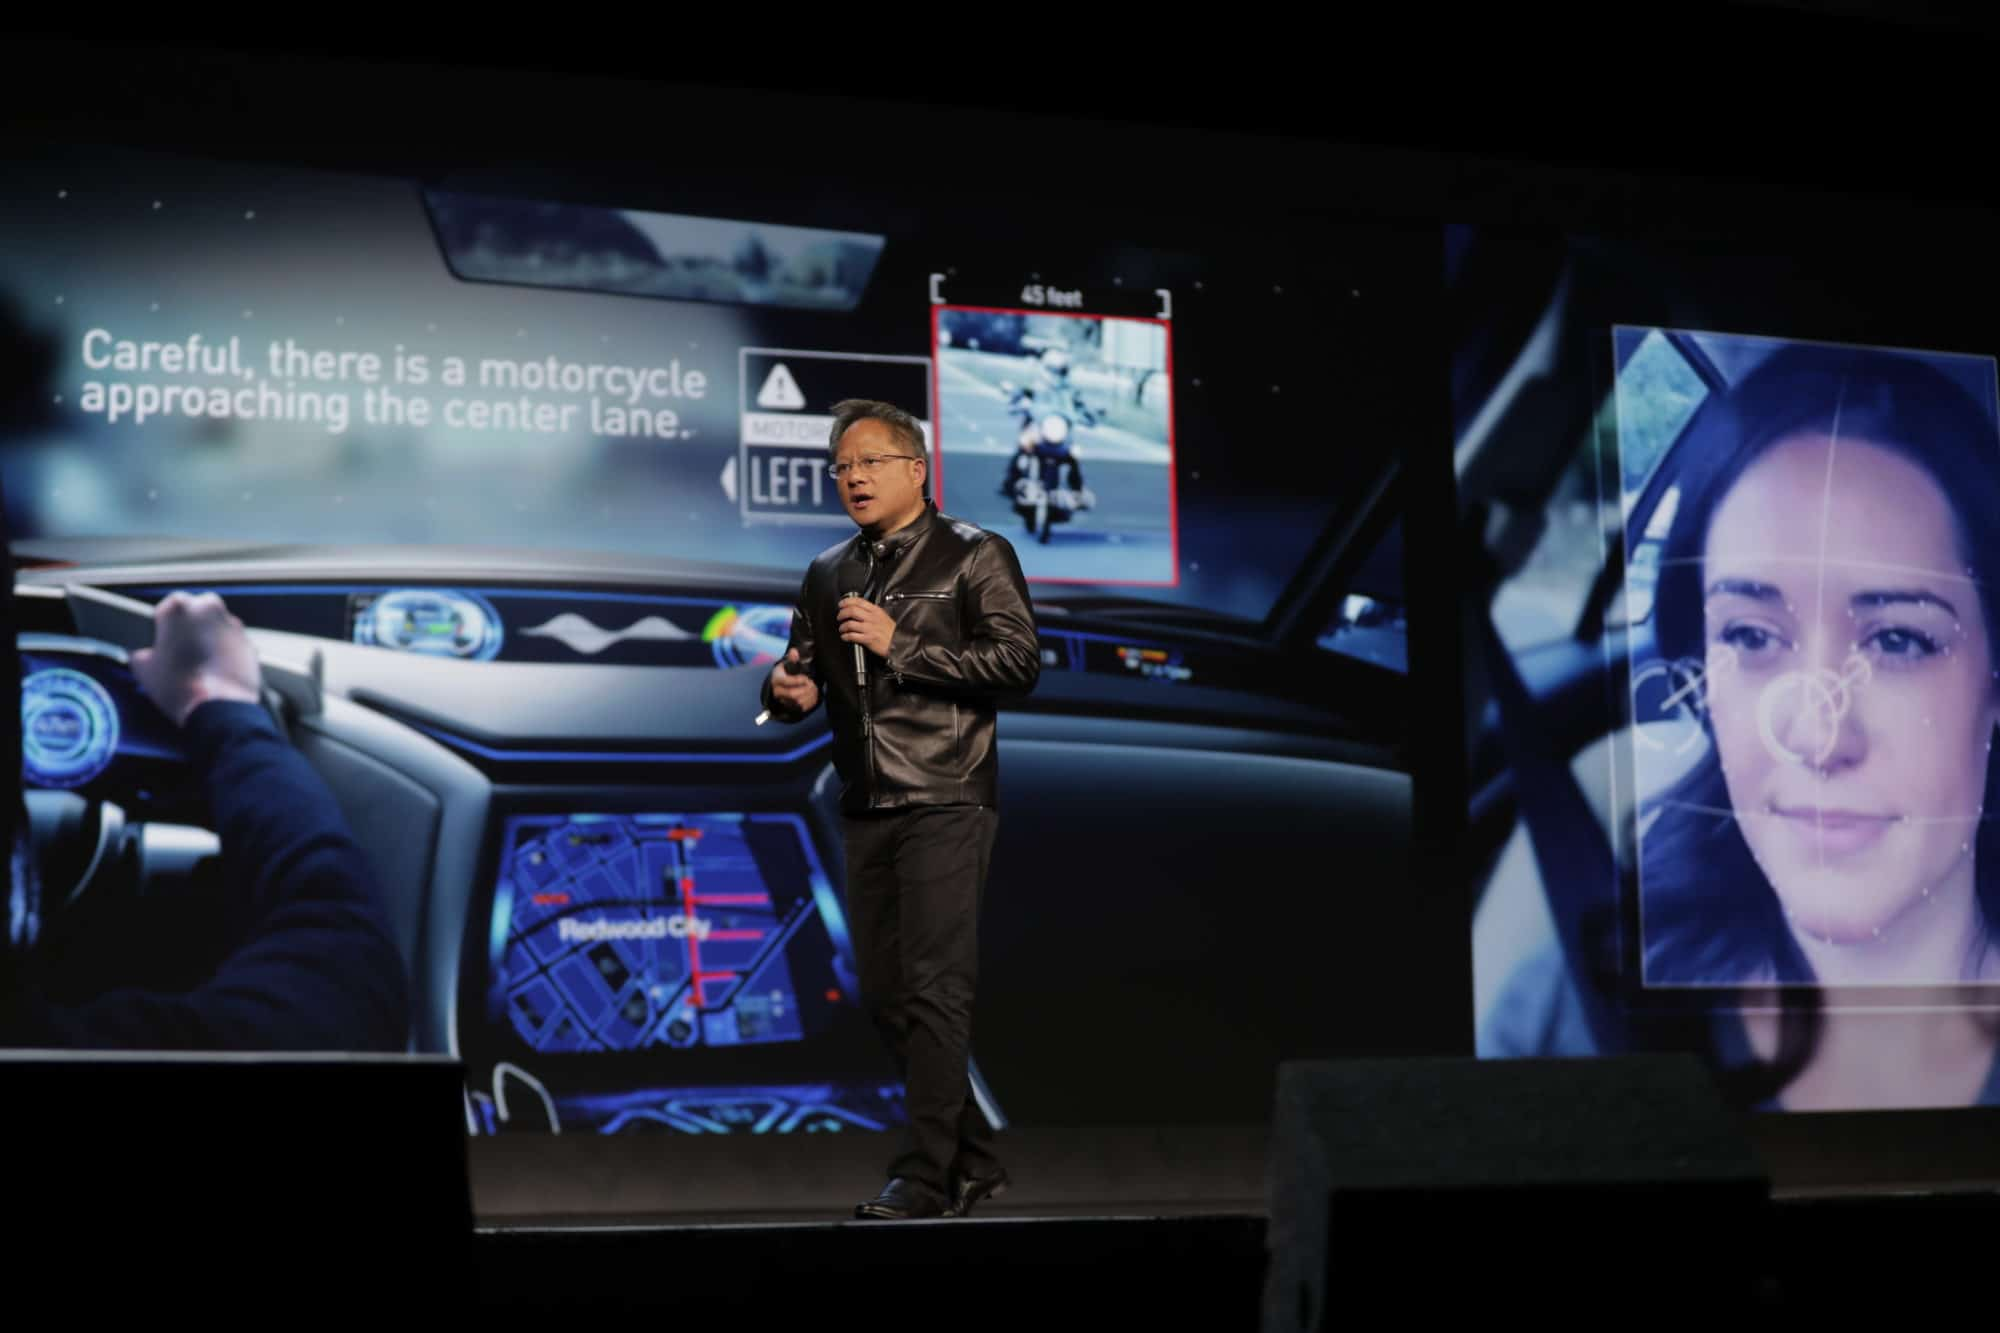 NVIDIA's CEO Jen-Hsun Huang discusses AI Co-Pilot